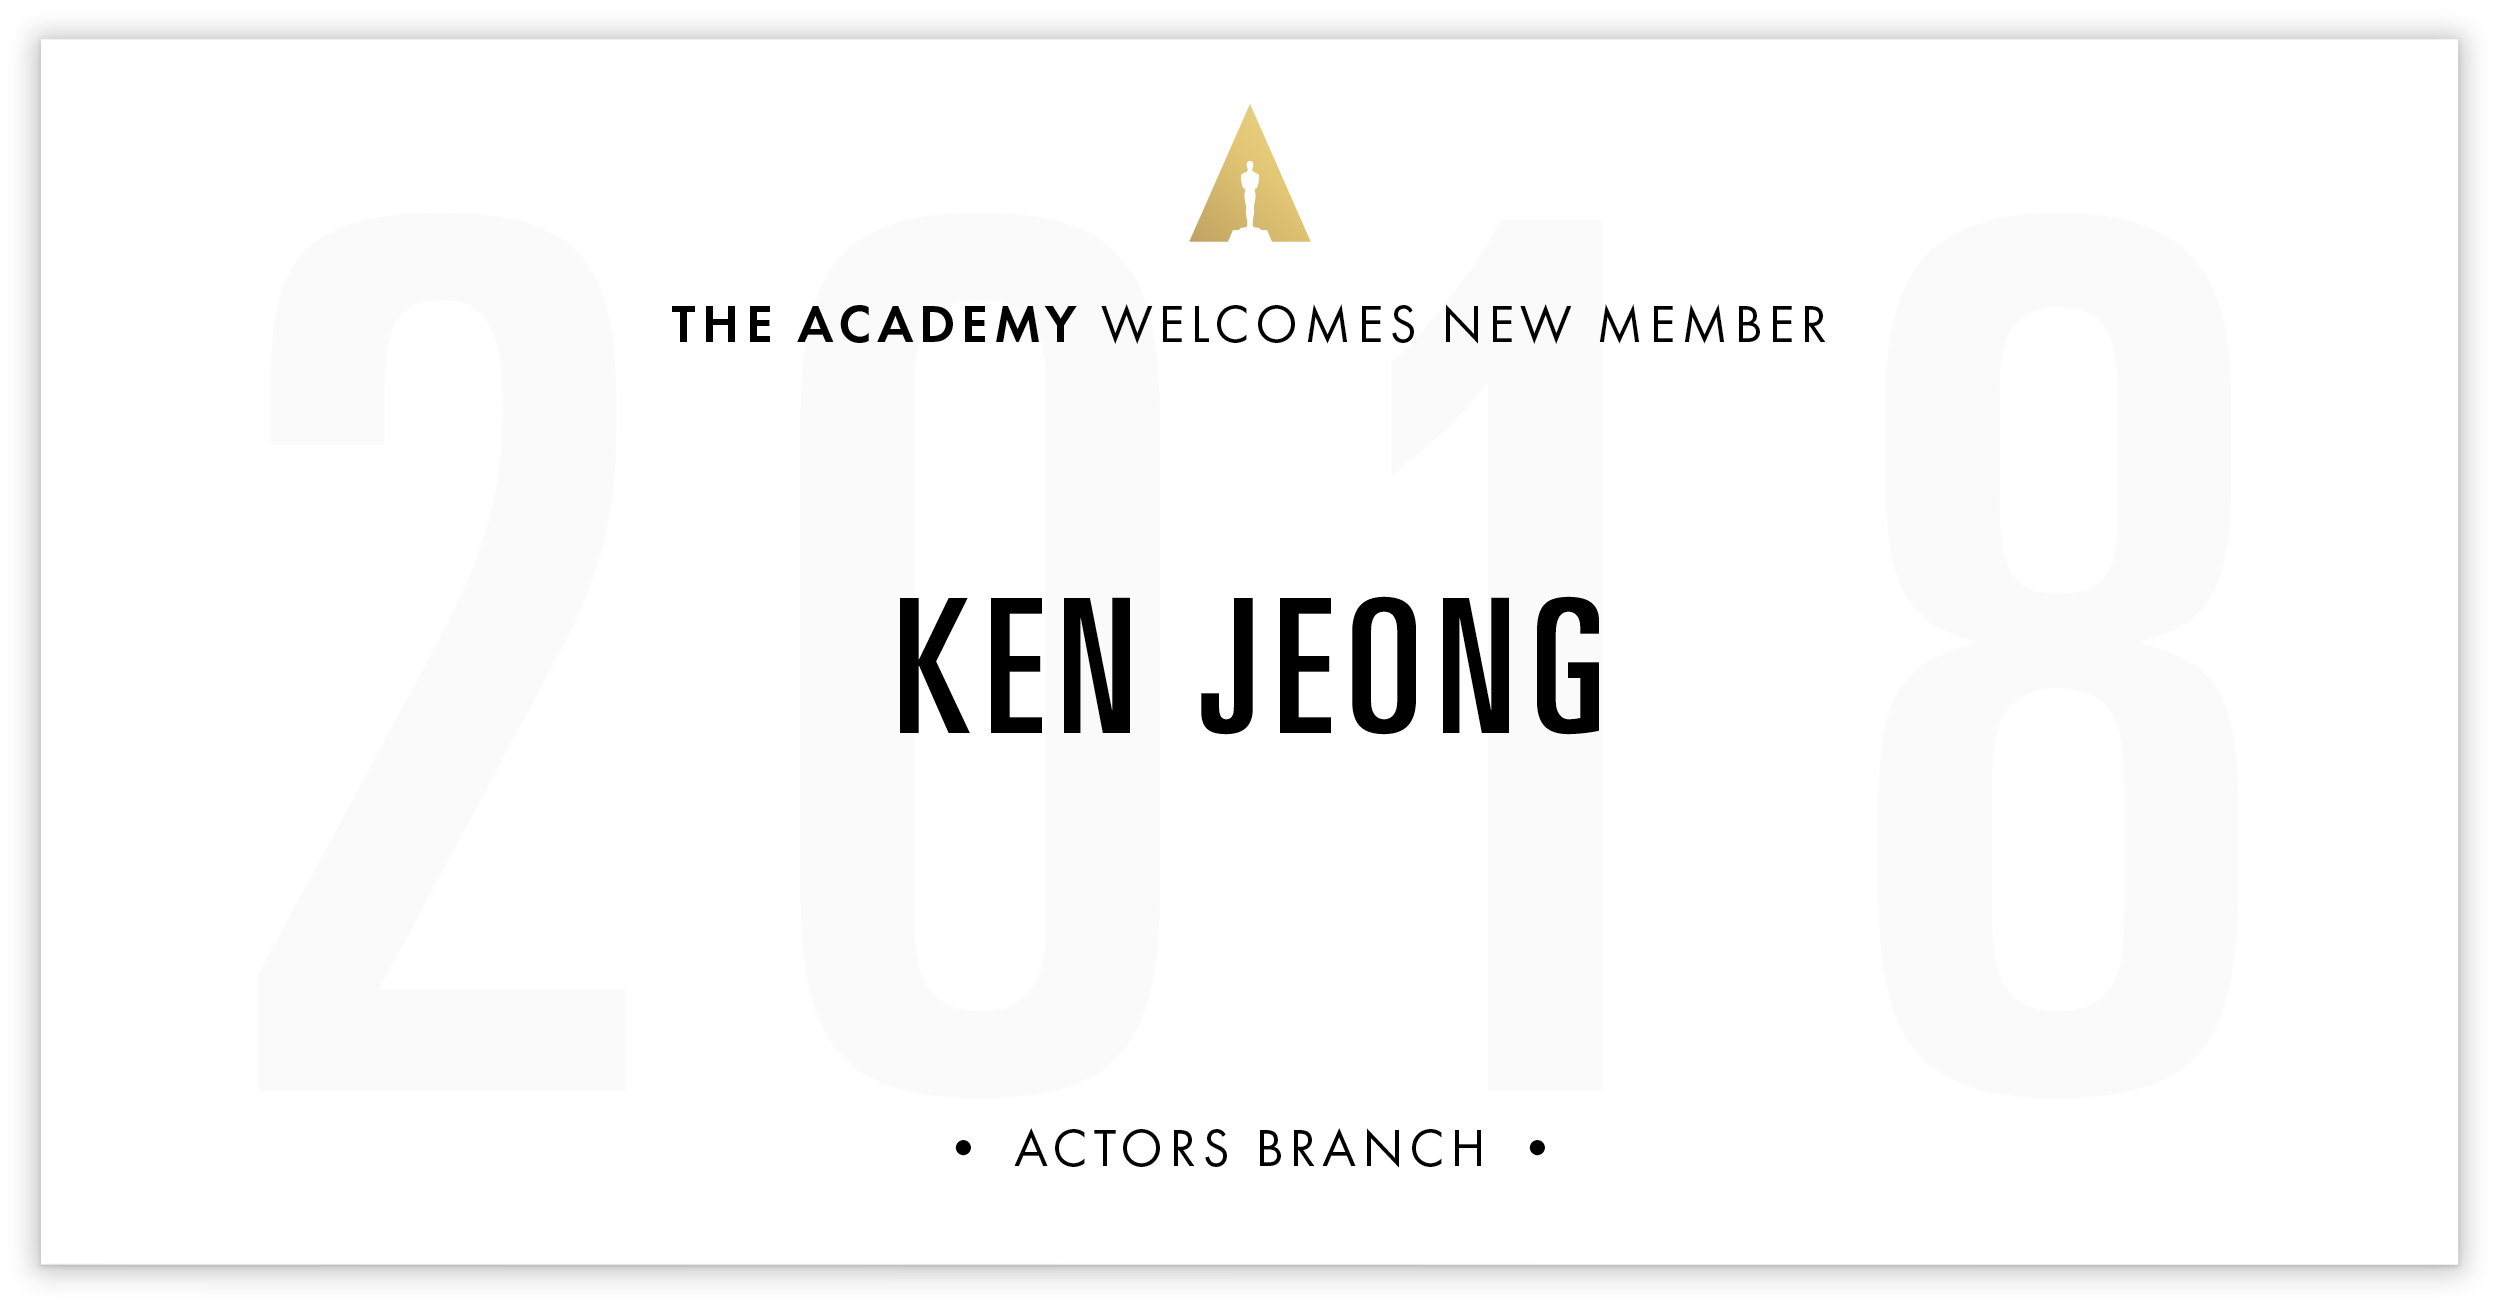 Ken Jeong is invited!